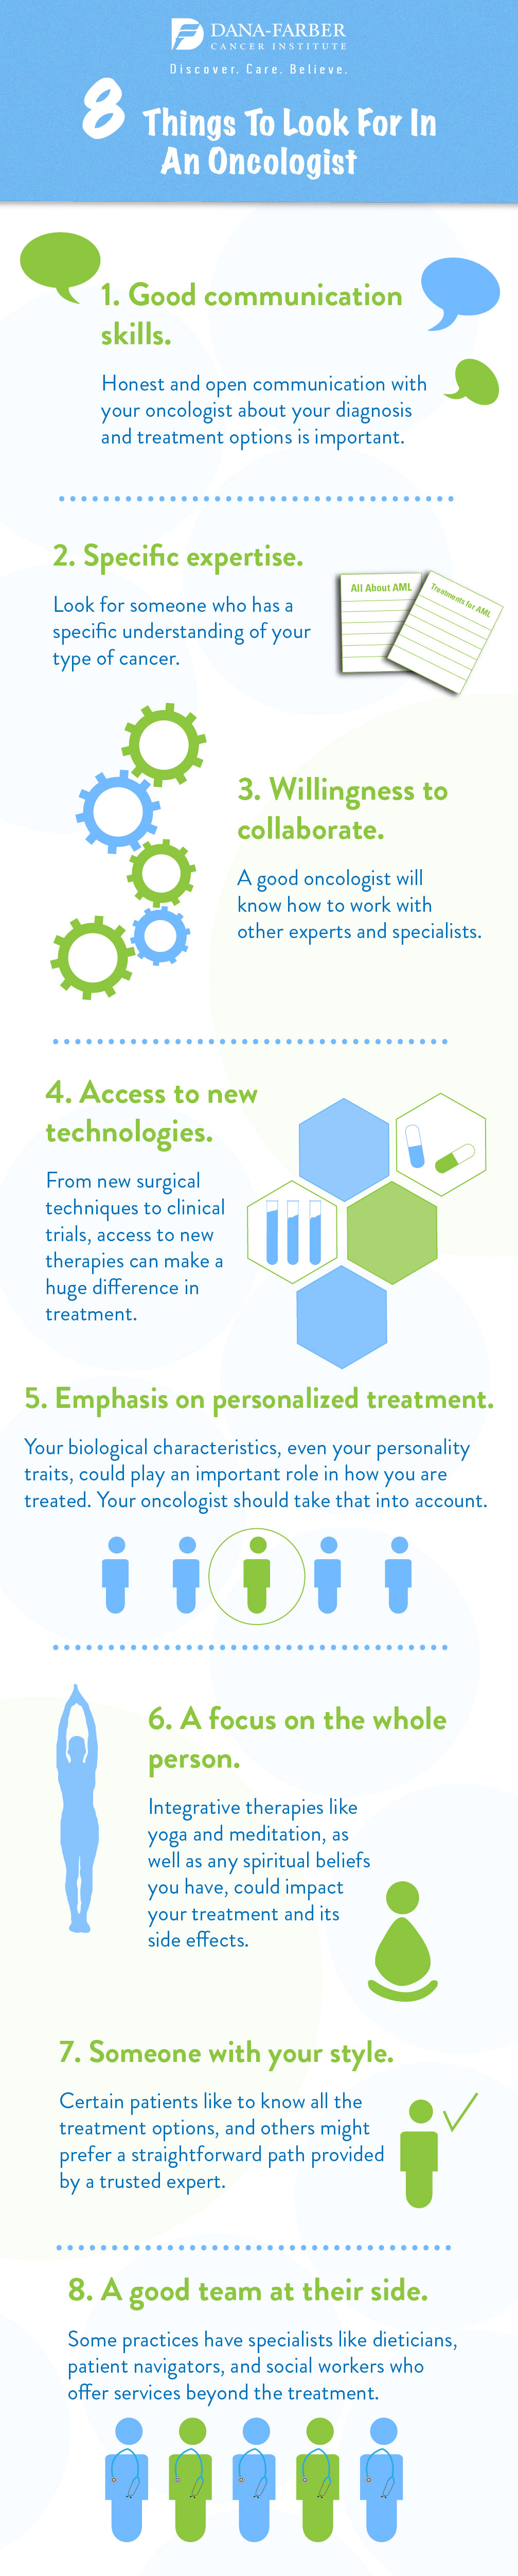 7657-what-to-look-for-in-an-oncologist-infographic-3-01